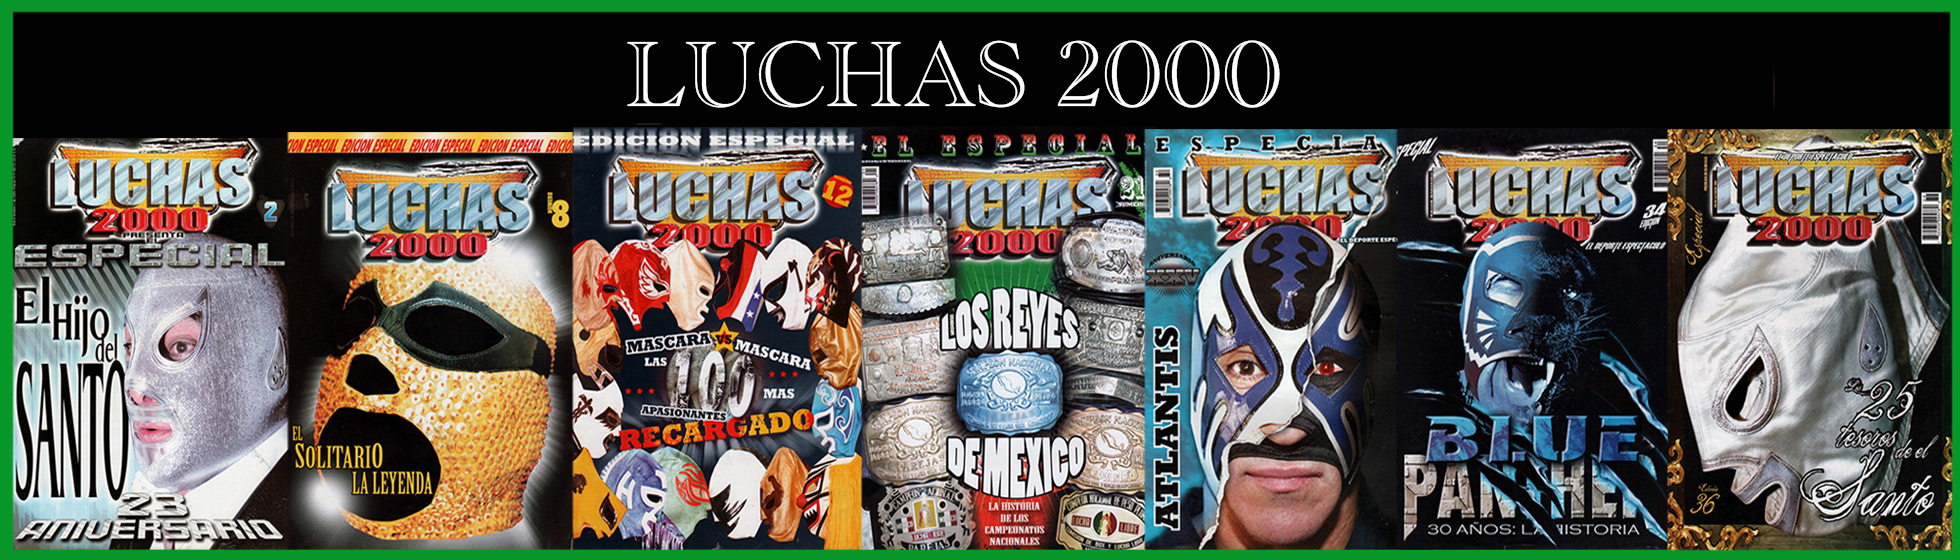 luchas2000